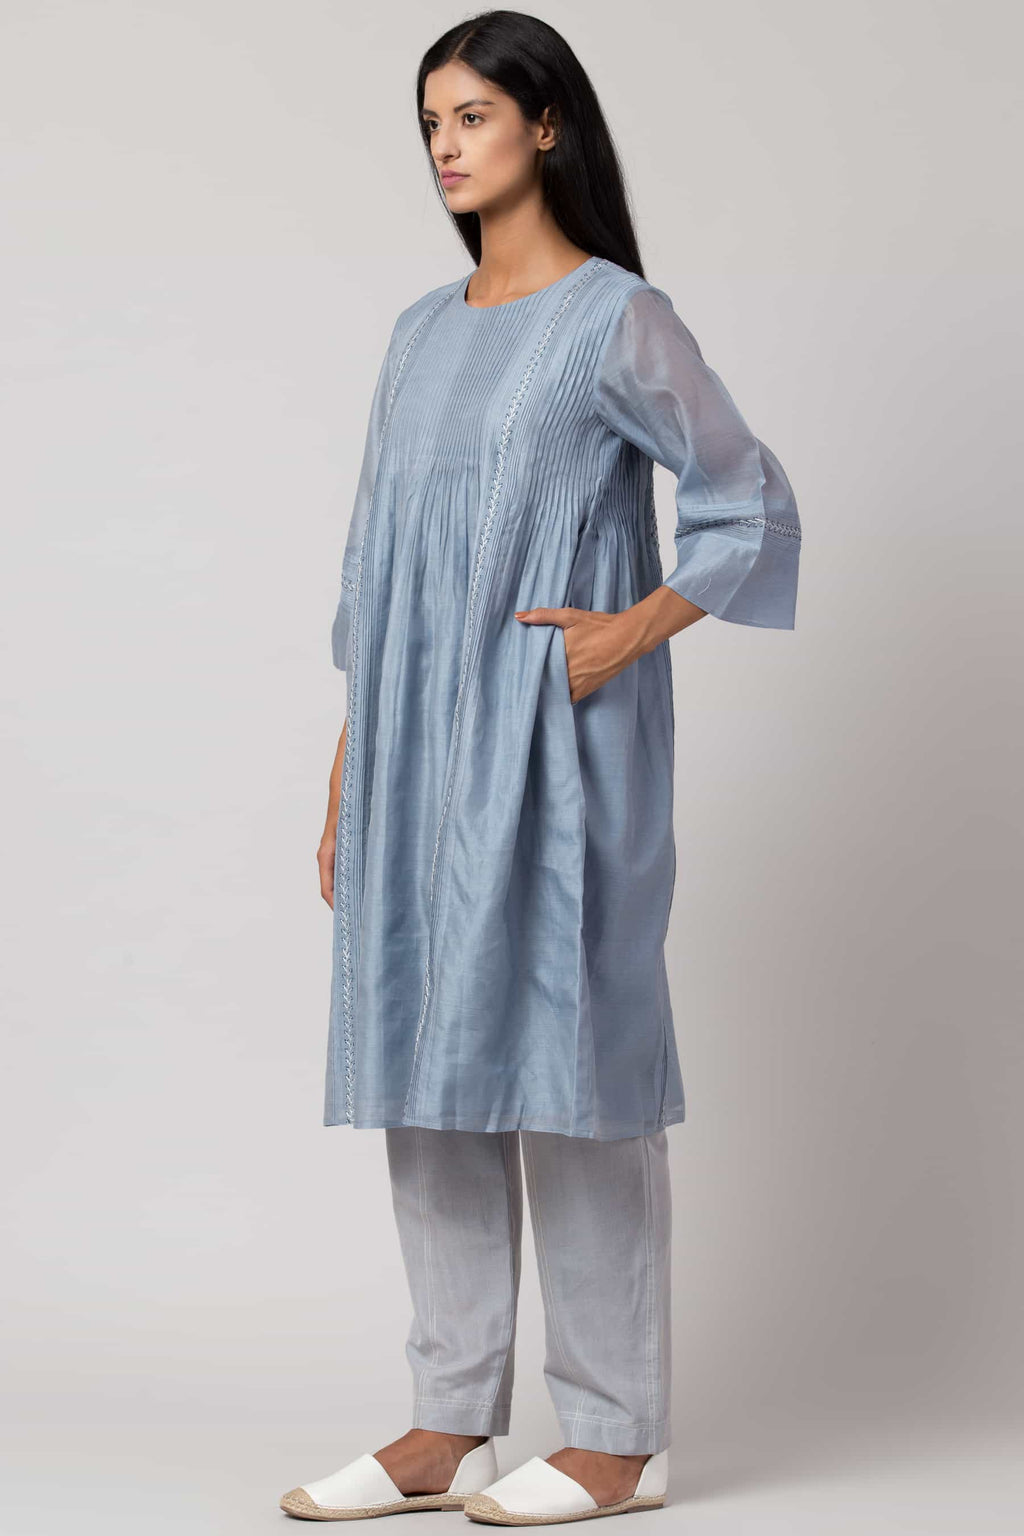 Blue hand-embroidered dress made in 100% handwoven yarn dyed silk Chanderi - side